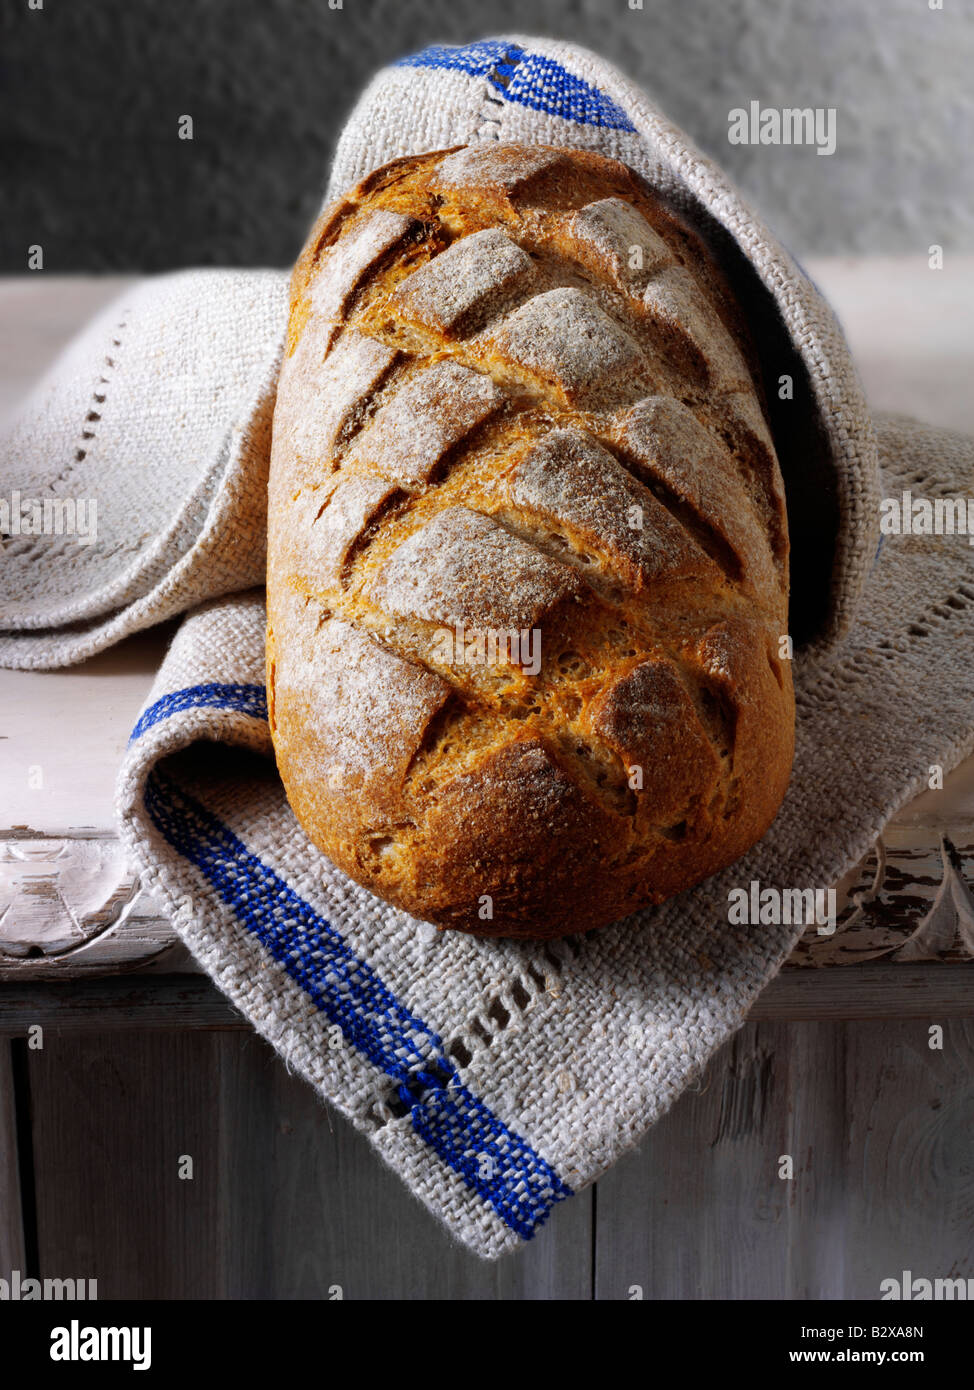 Sour Dough Bread loaf - Stock Image